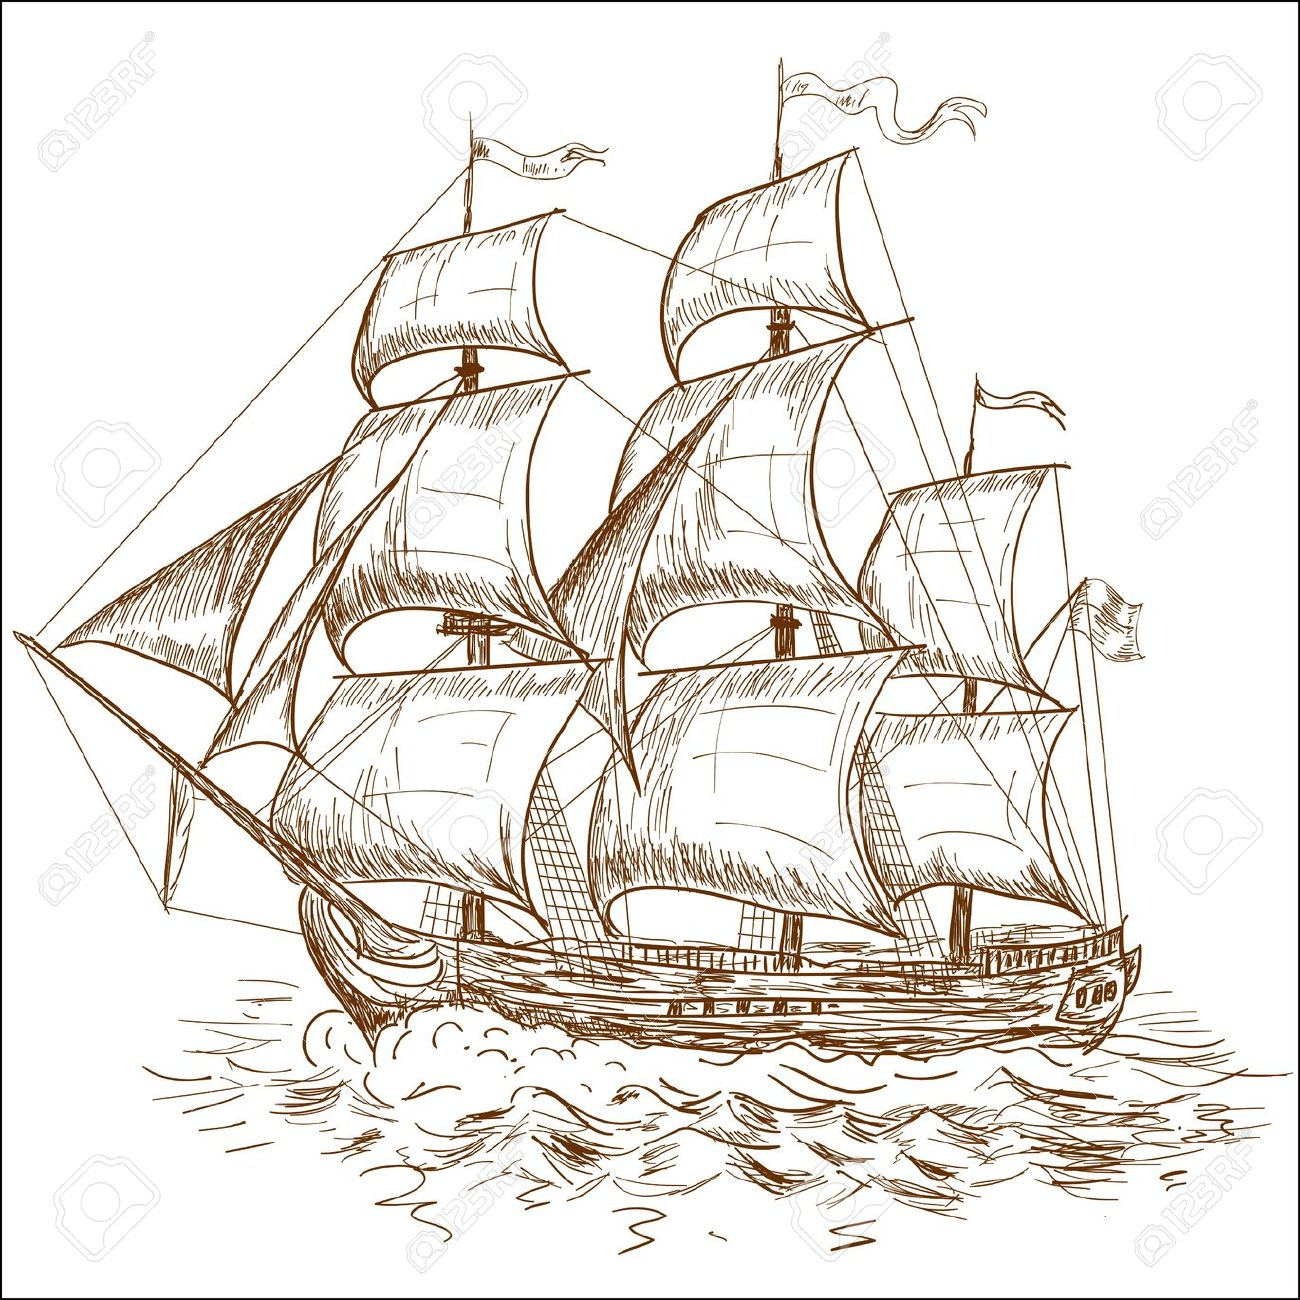 Sail Ship Drawing at GetDrawings.com.